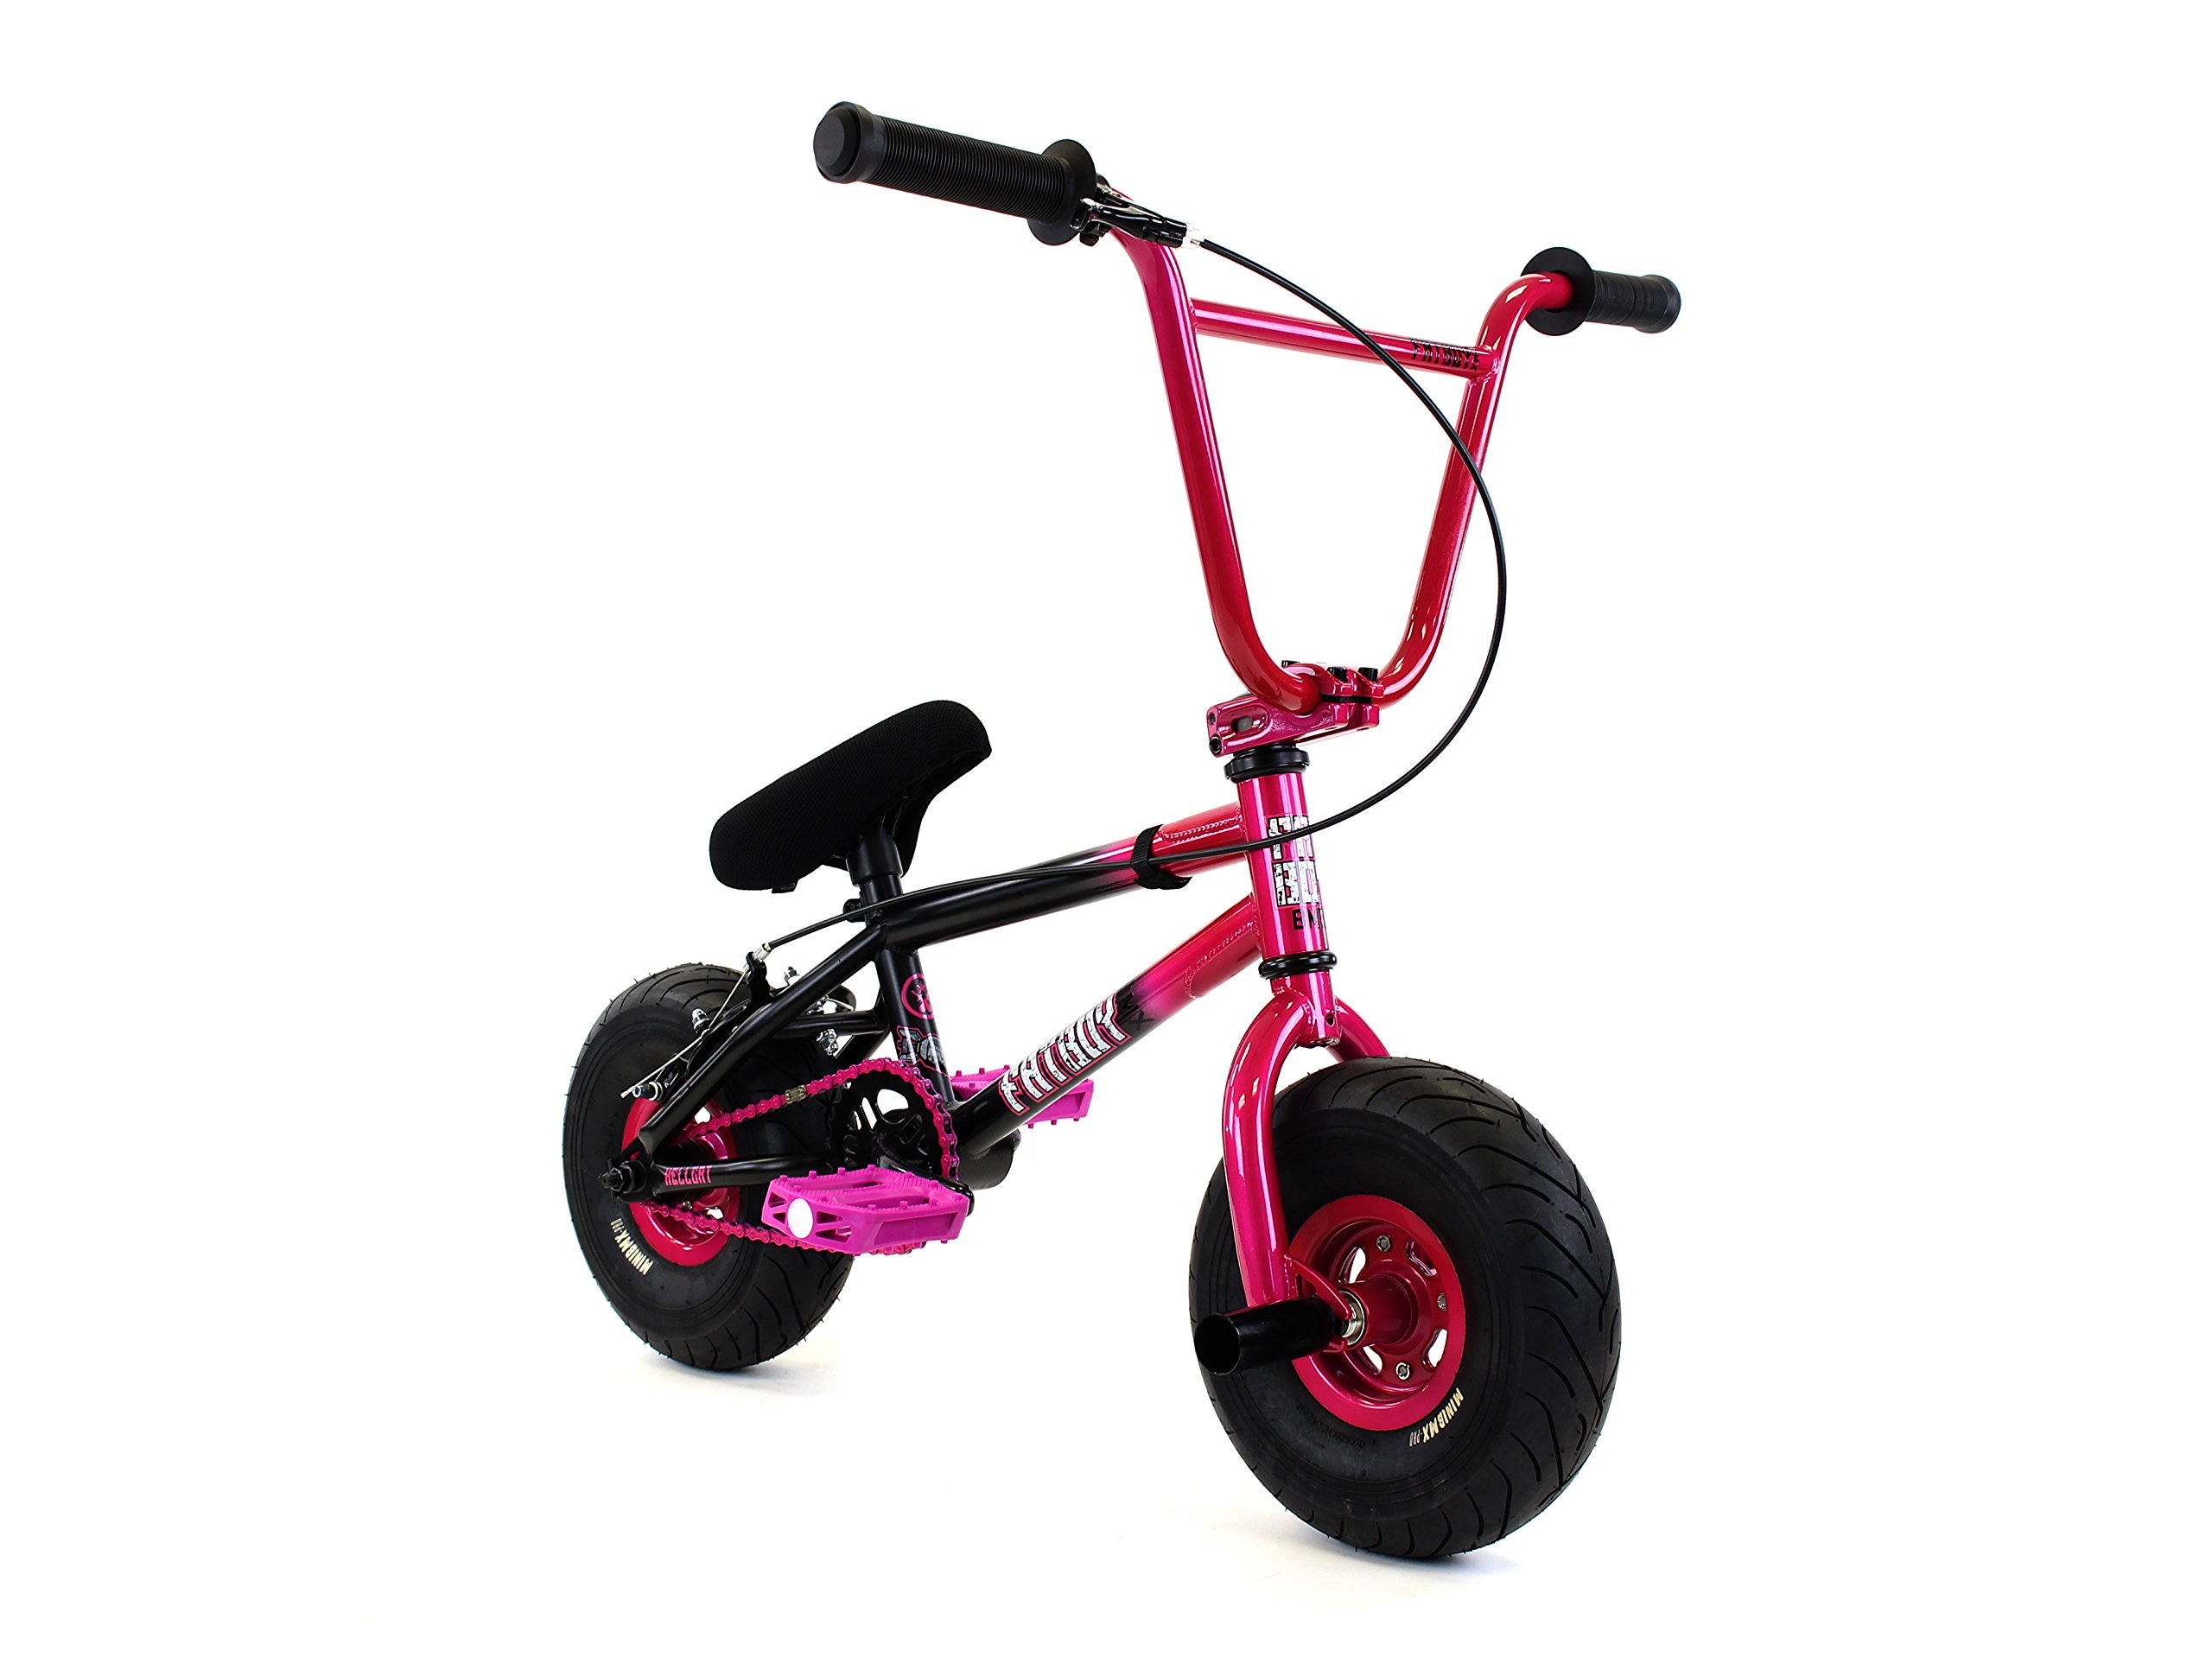 FatBoy Mini BMX Bicycle Freestyle Bike Fat Tires, 2 Tone, Pink Black Assault